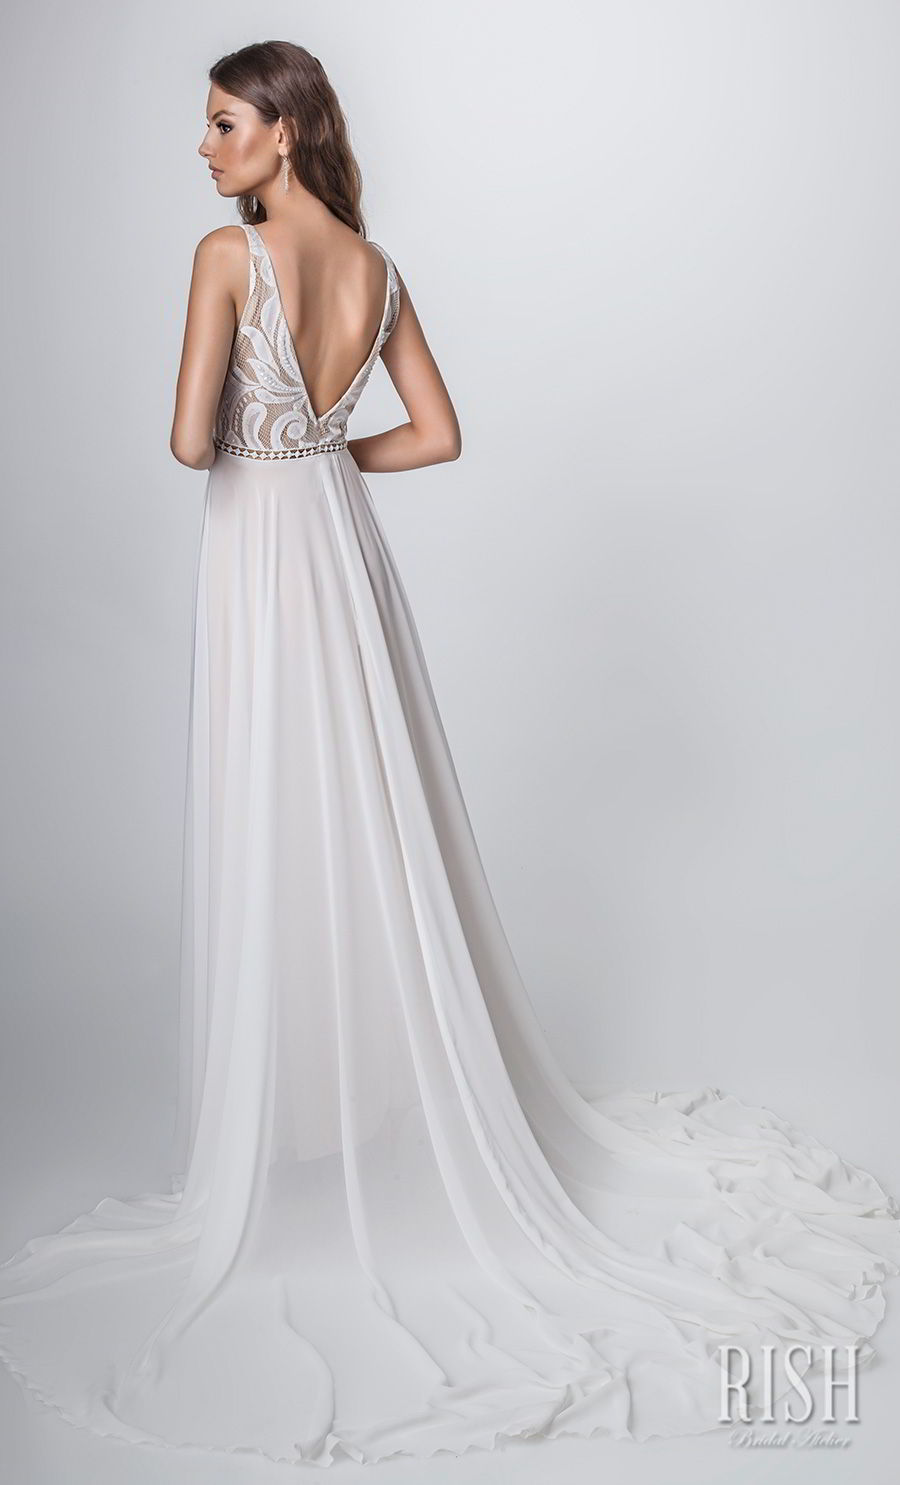 rish bridal sun dance 2018 sleeveless deep v neck heavily embellished bodice romantic glamorous soft a  line wedding dress v back chapel train (venice) bv